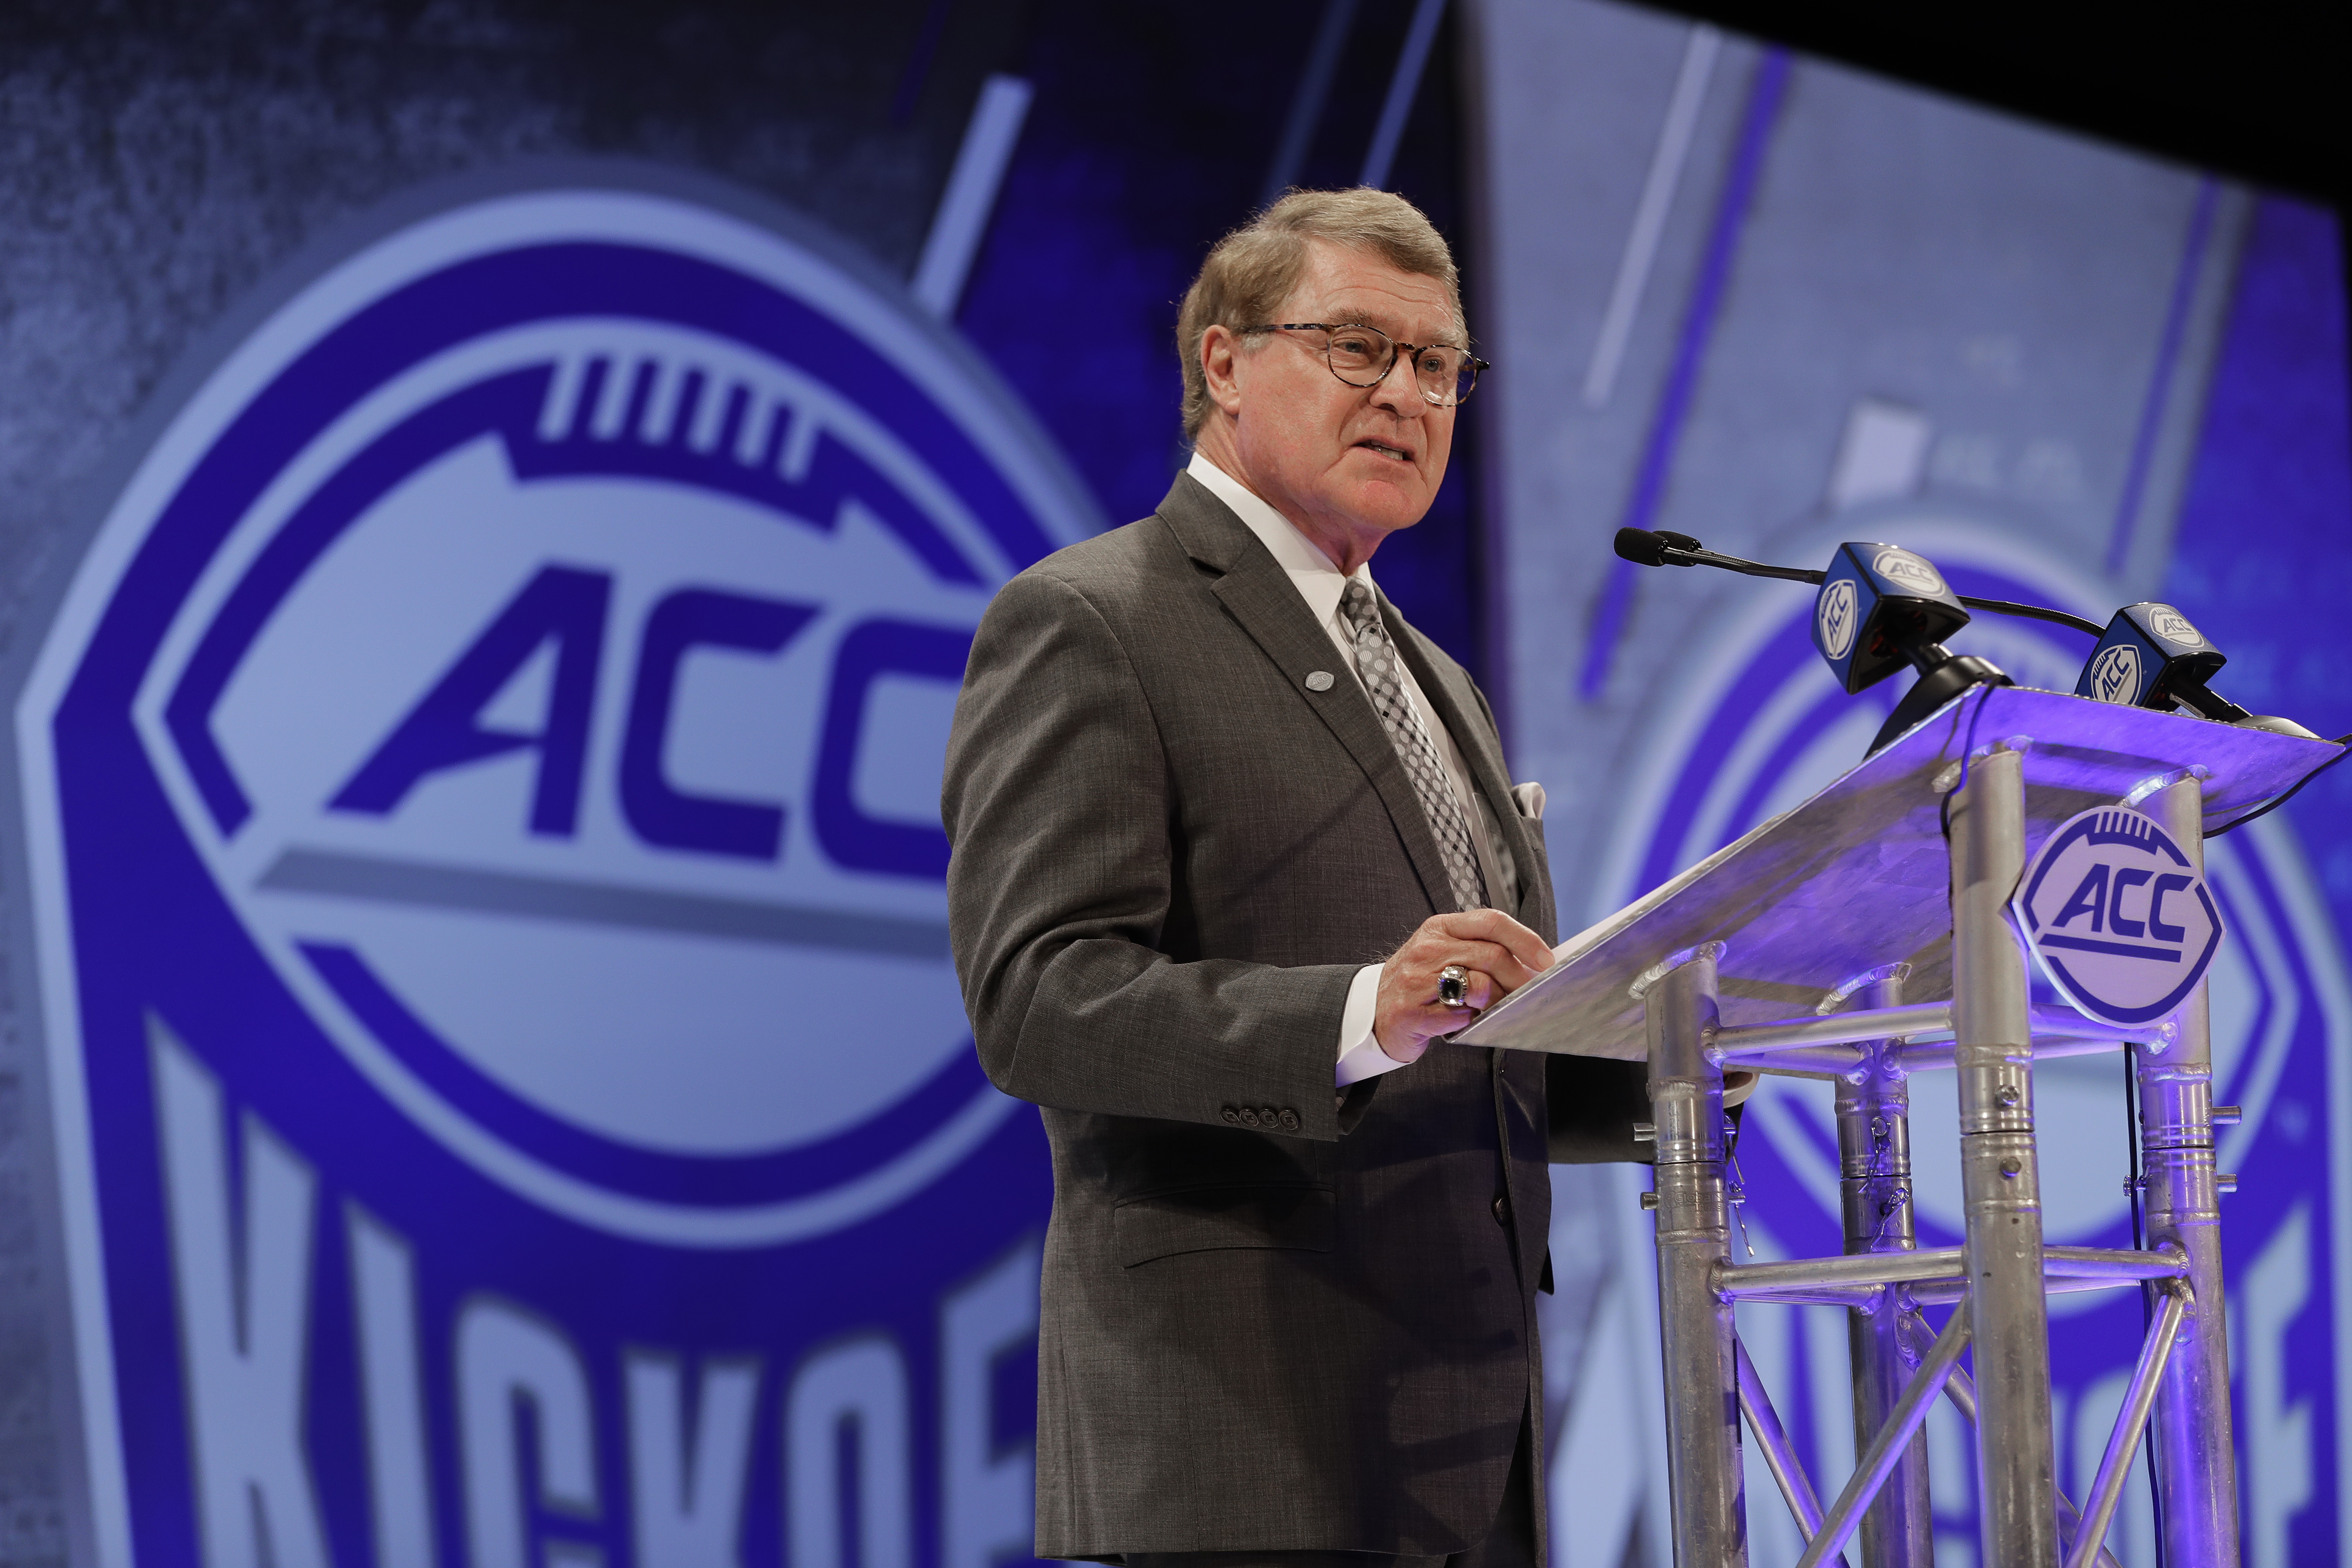 Nearly one-fifth of Spectrum cable customers won't get ACC Network for free